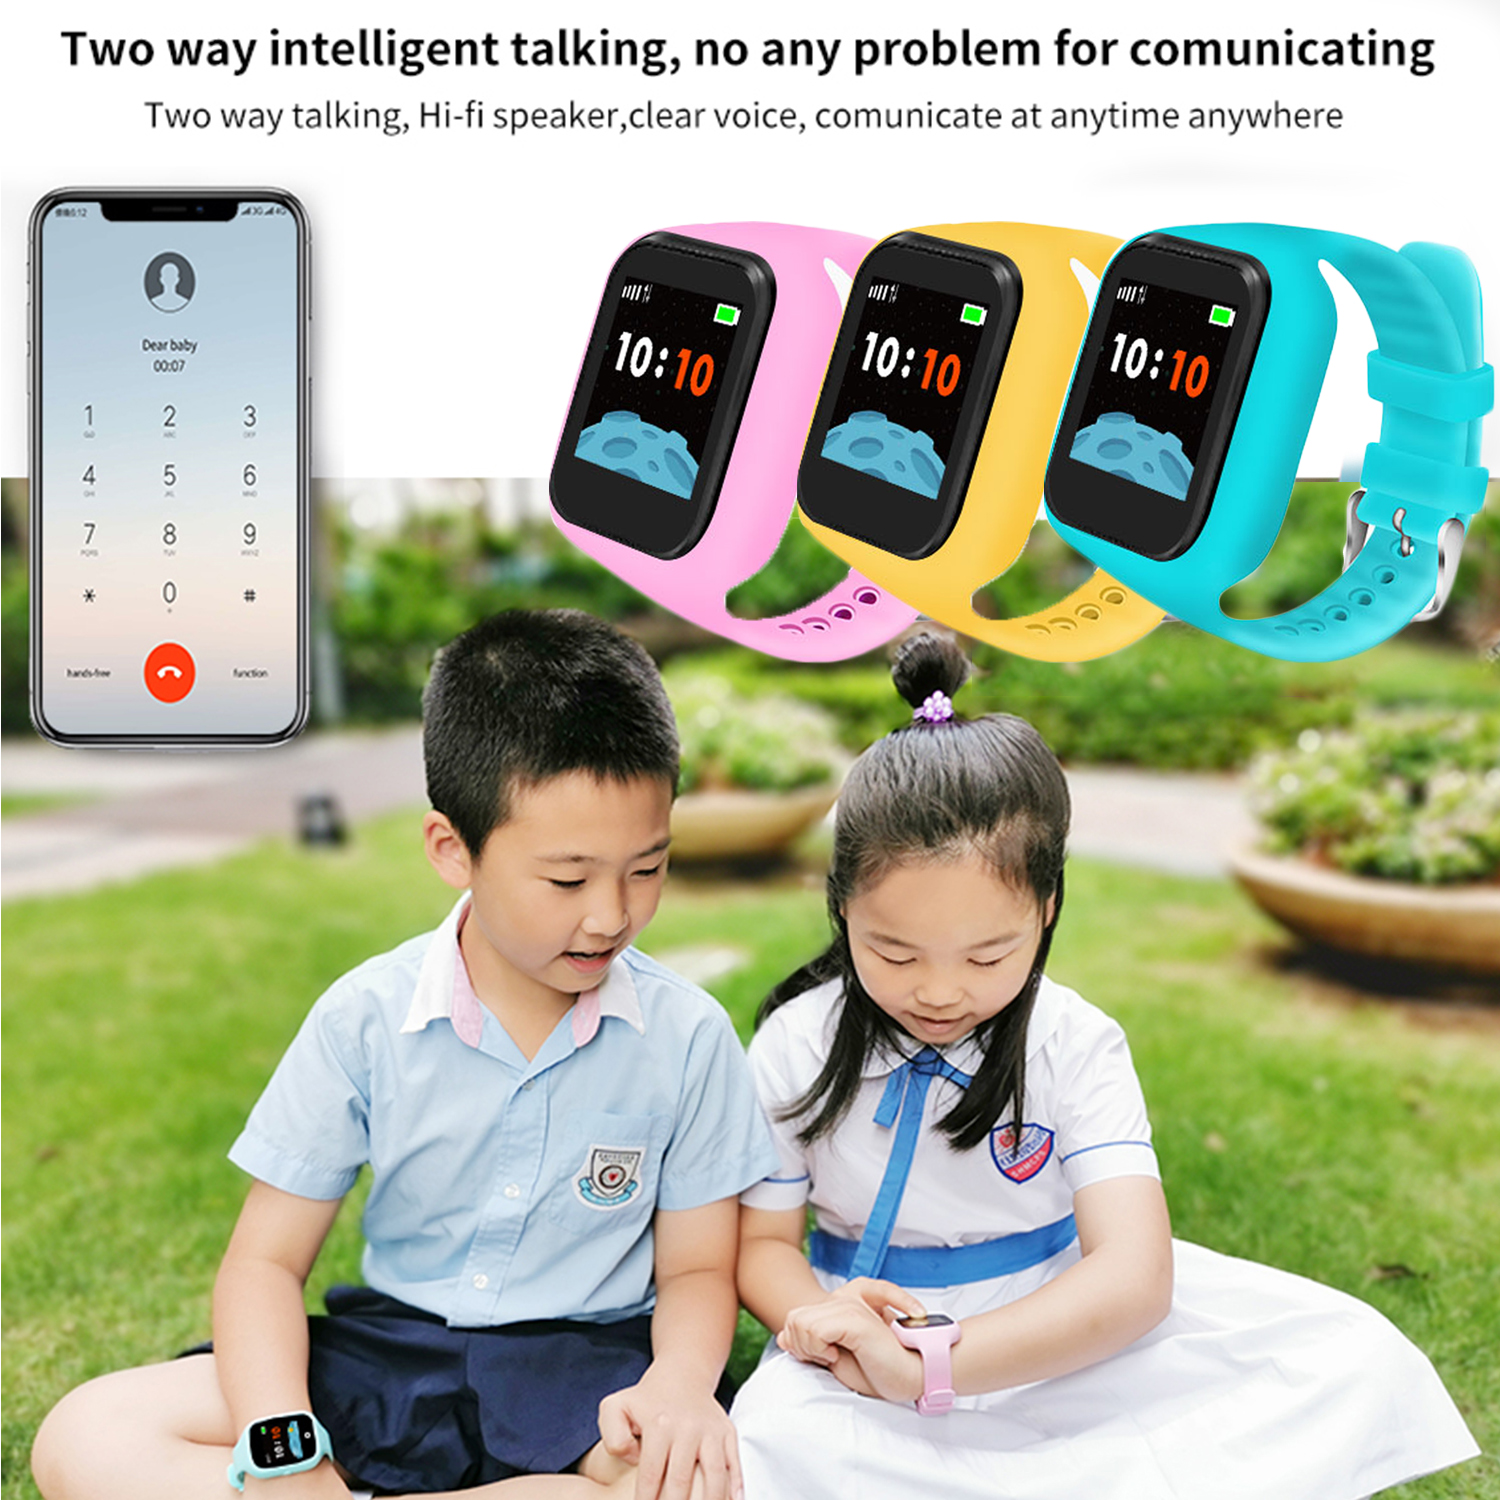 Multifunction Waterproof Anti-lost Smart Watch Phone Tracker Locater Monitor With 1.3inch Screen For Kids Children